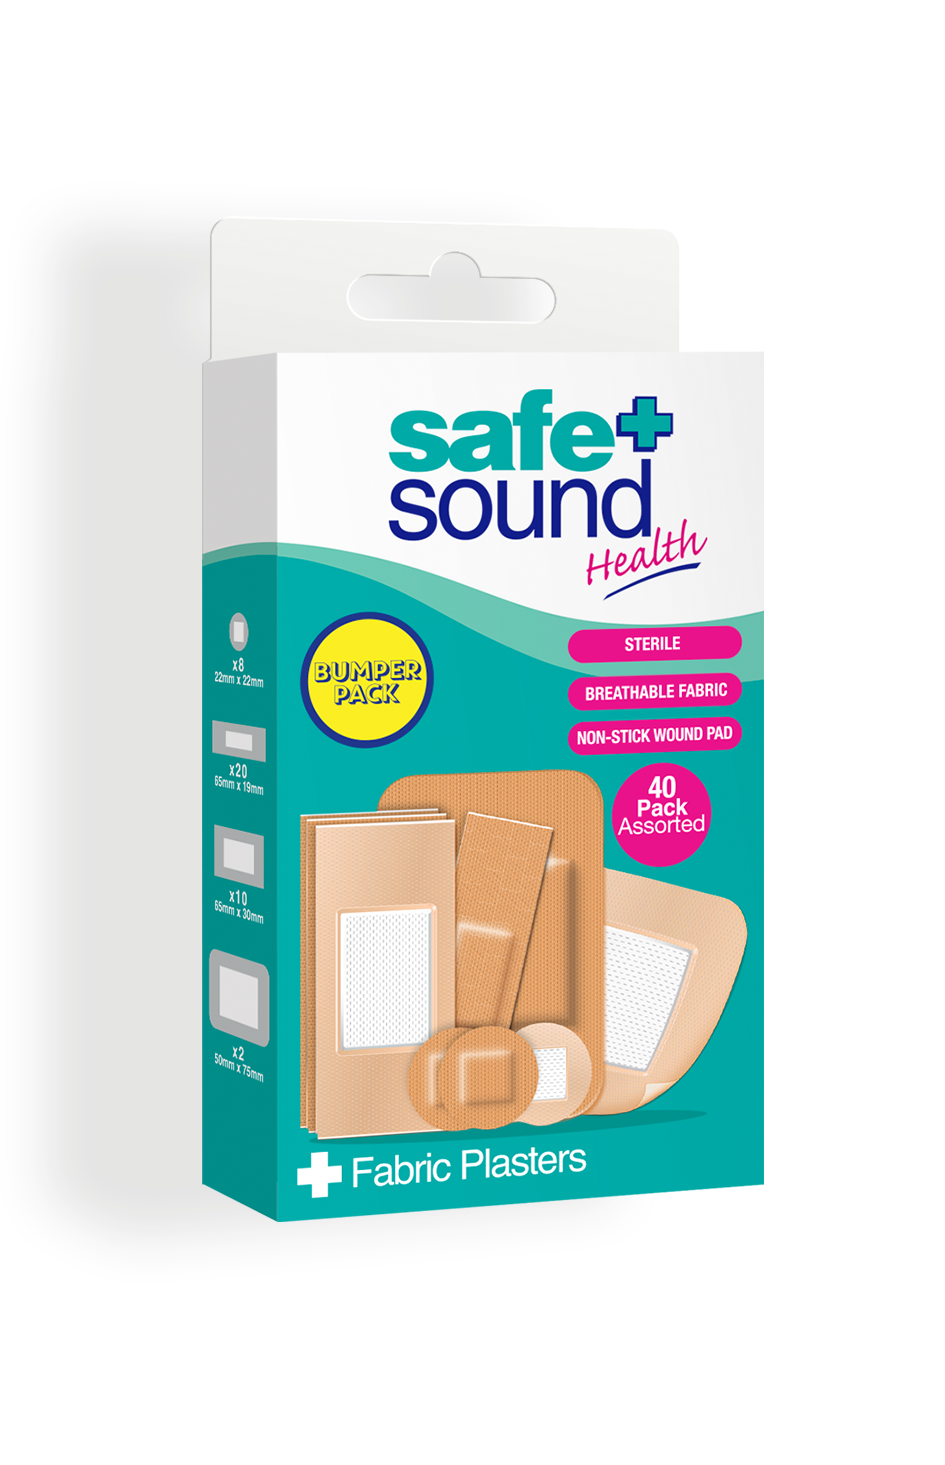 Safe and Sound Health pack of 40 Assorted Fabric Plasters